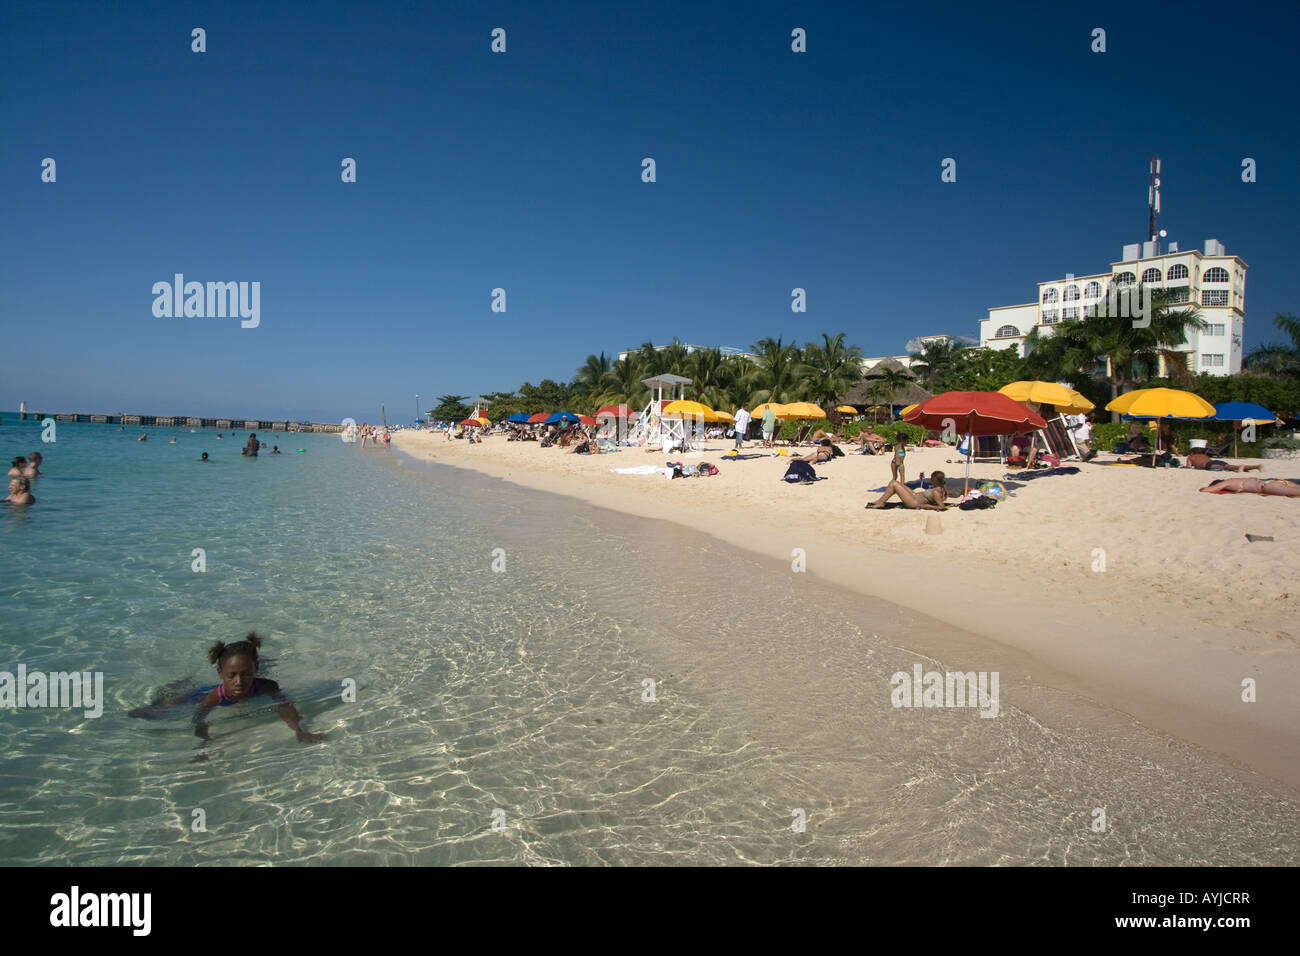 Jamaica Montego Bay beach Dr Caves beach Stock Photo